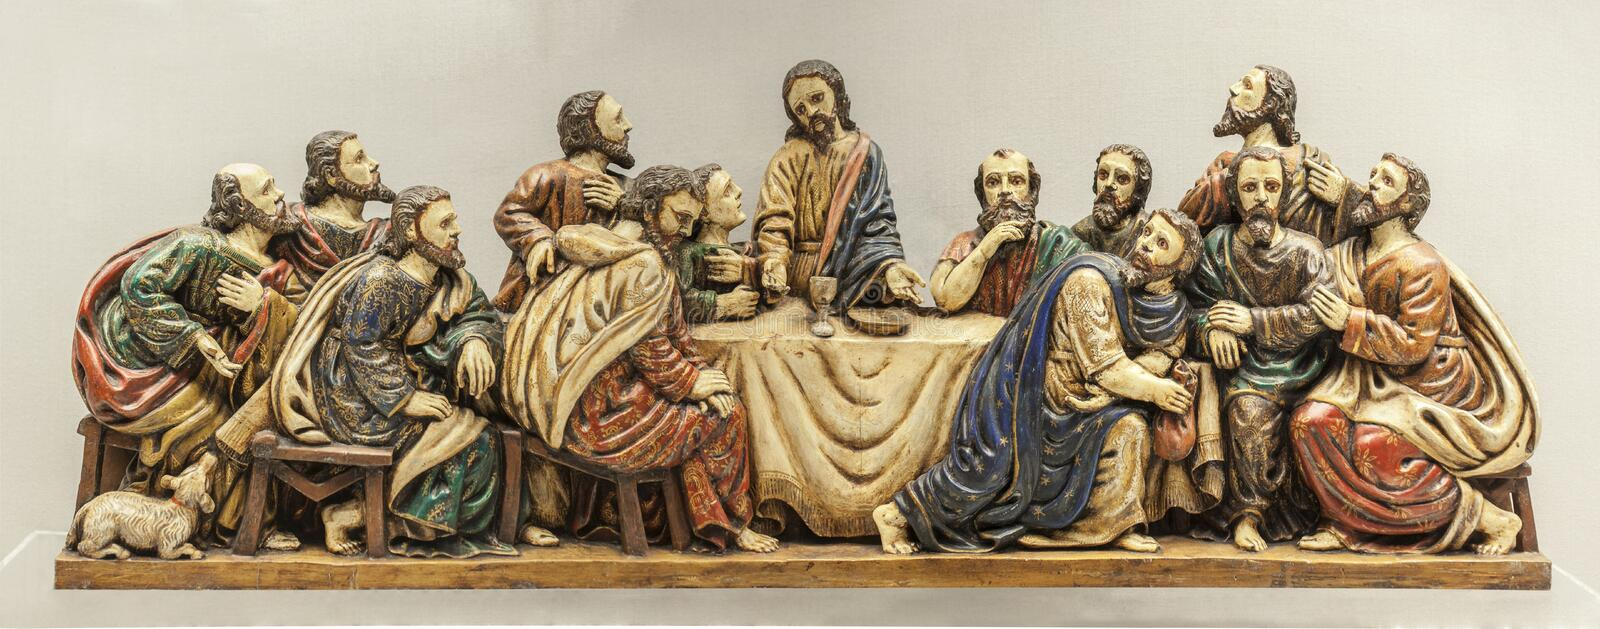 Last Supper depiction stock image